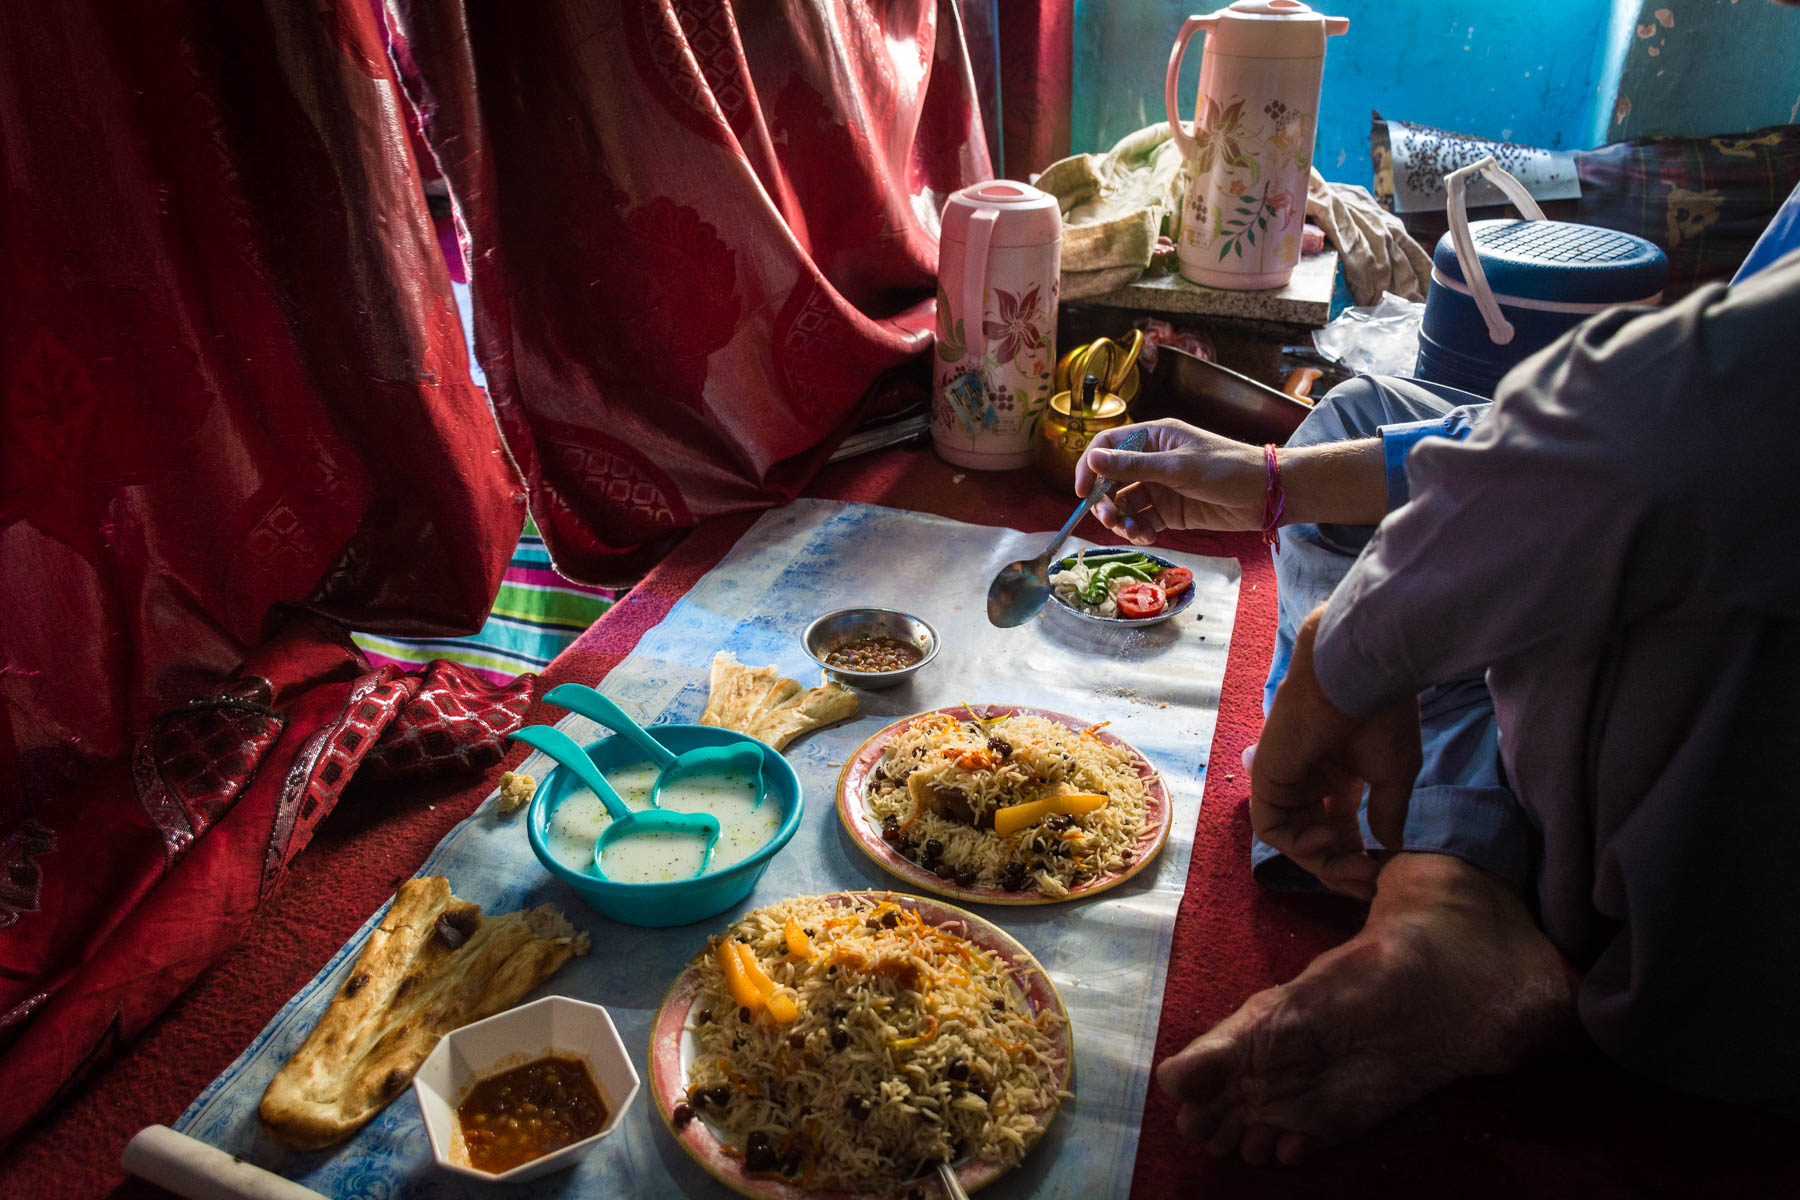 Lunchtime in a hidden women's area in a restaurant in Herat, Afghanistan - Lost With Purpose